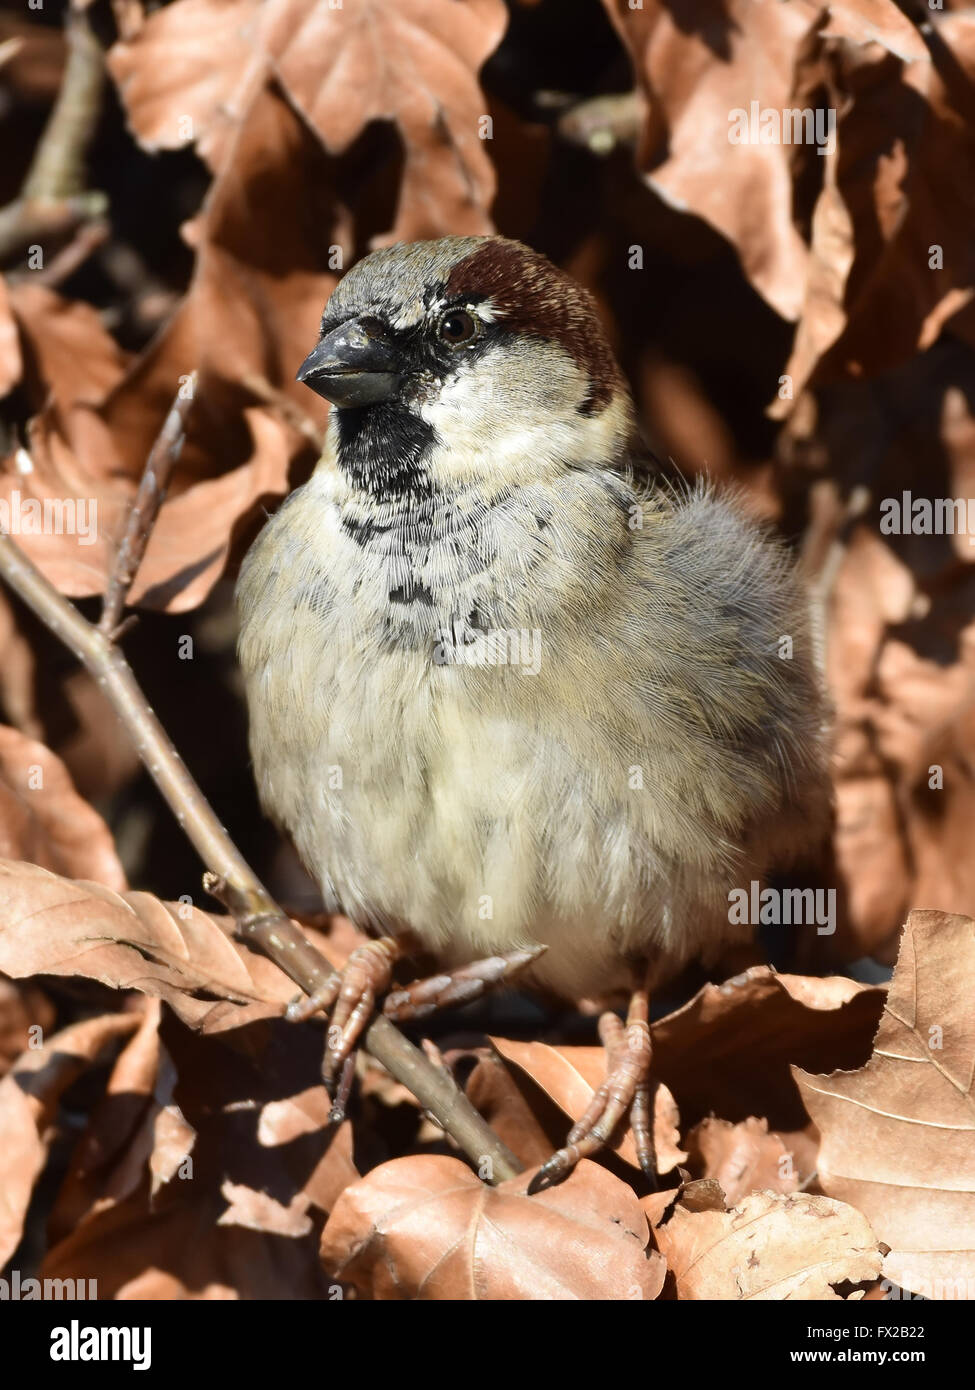 House sparrow resting in a bush with withered leaves around it - Stock Image